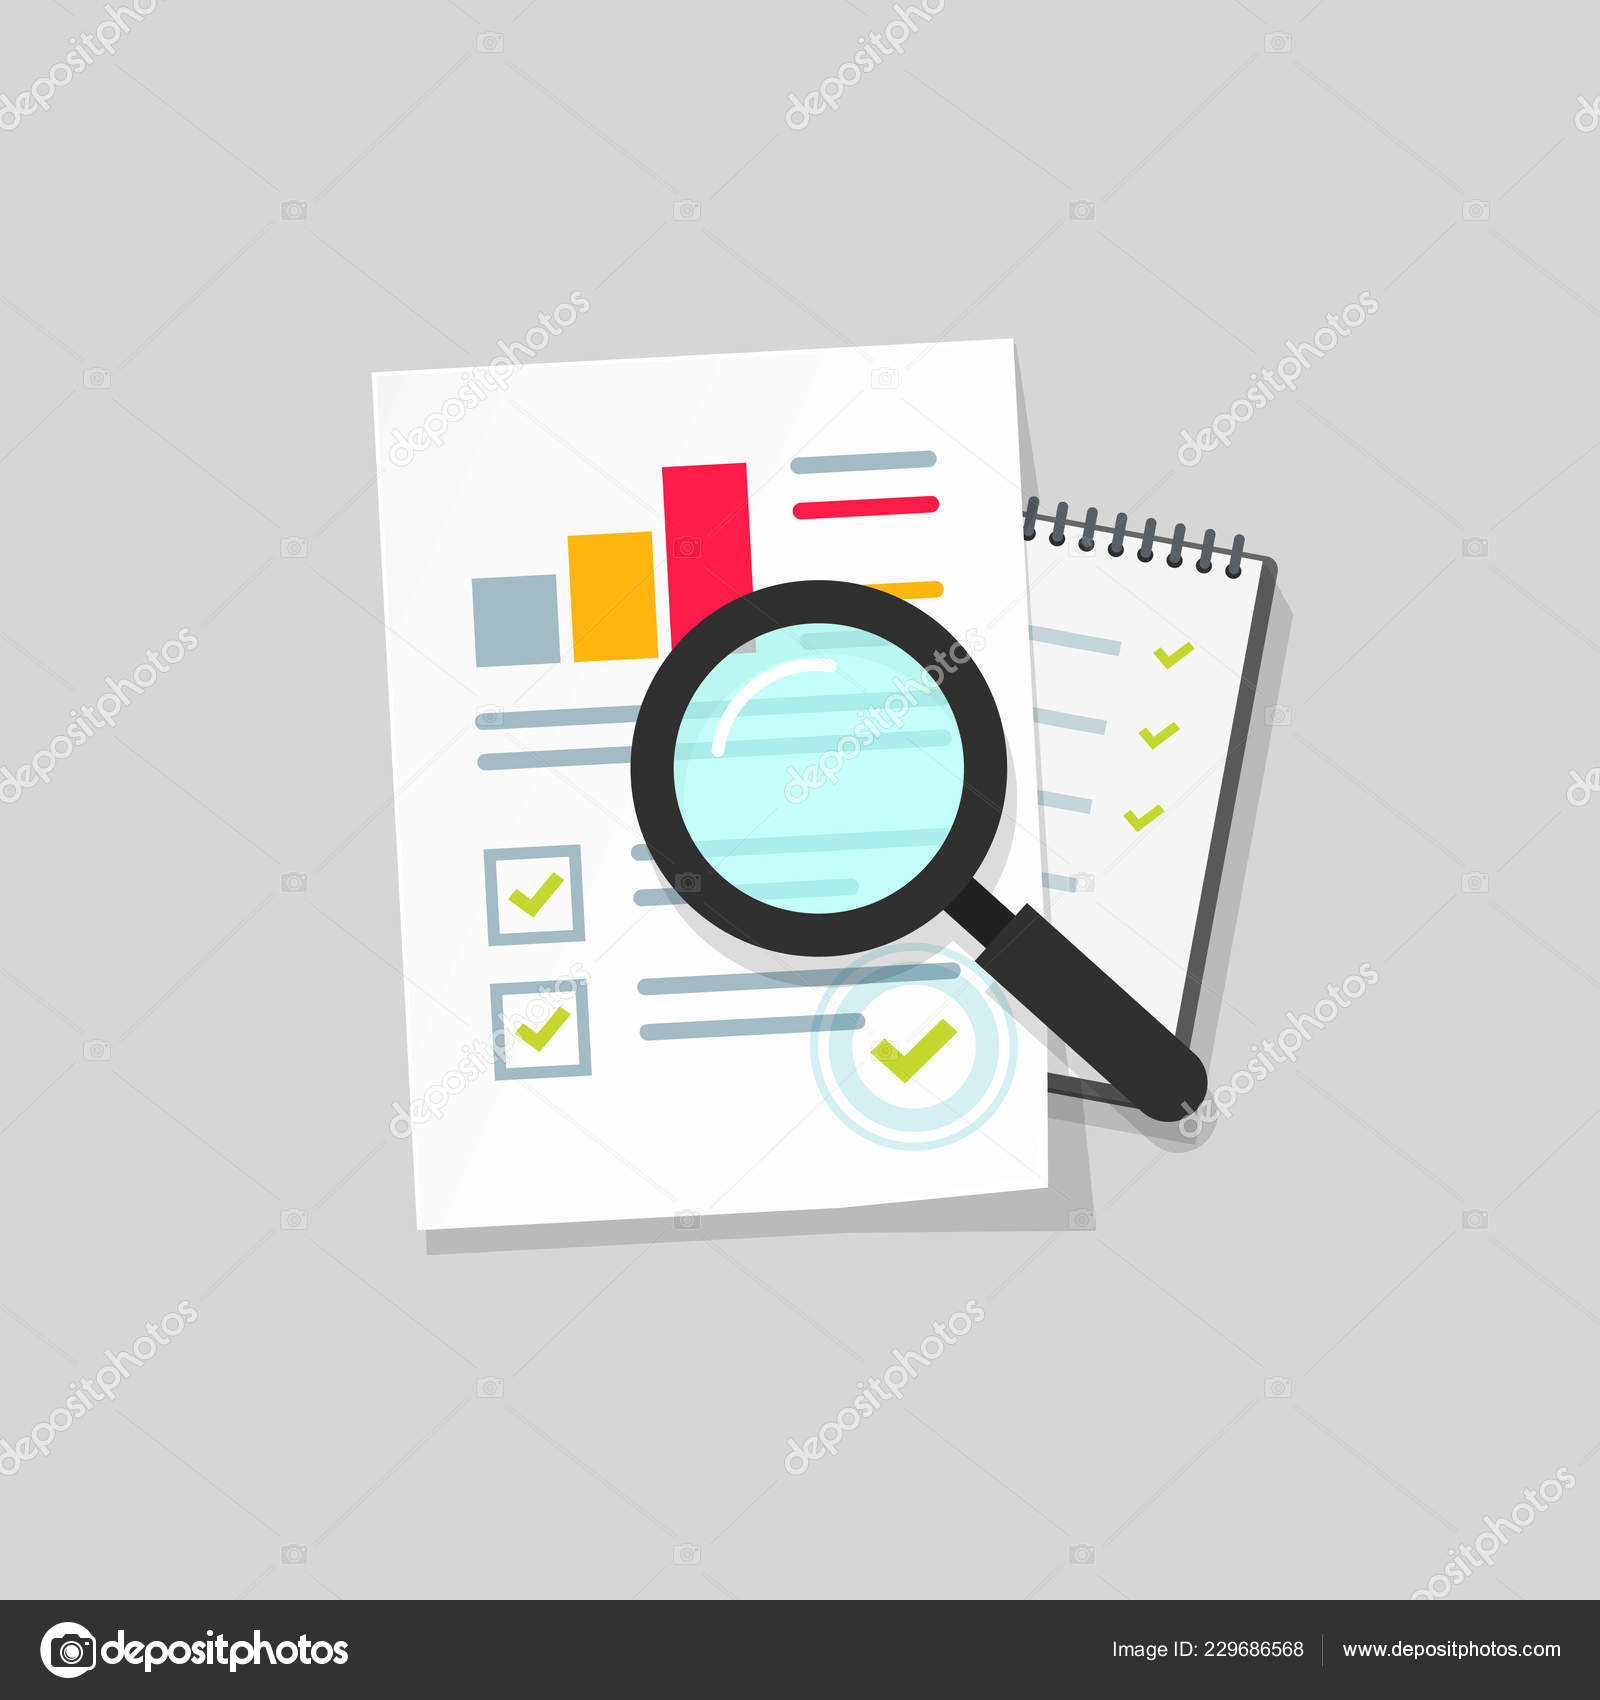 Clipart Data Analysis Audit Research Vector Icon Flat Cartoon